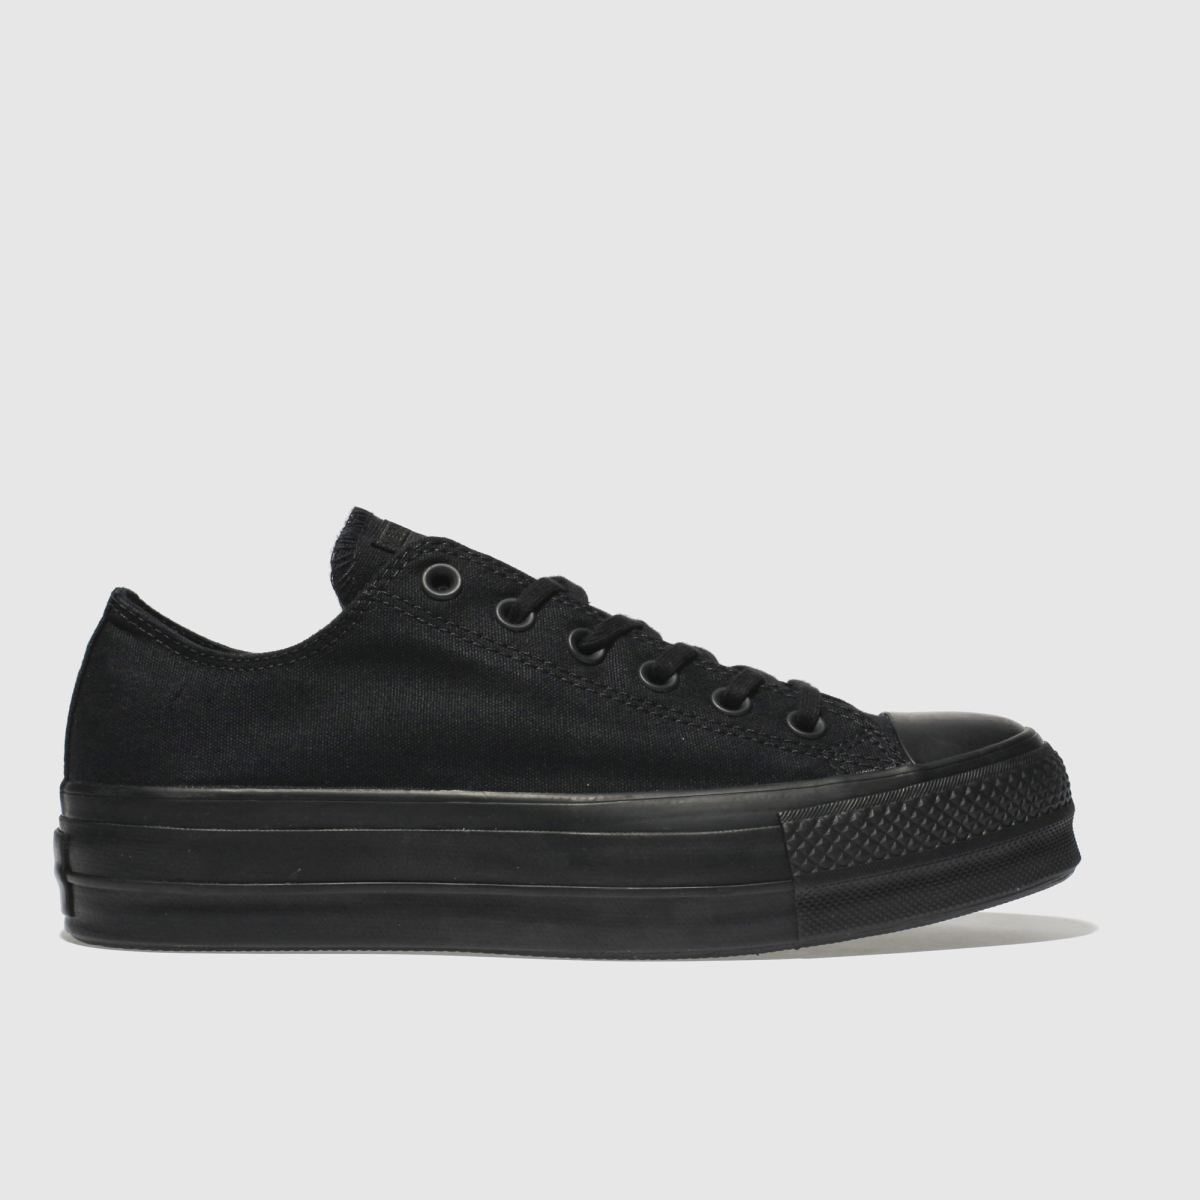 Converse Black Clean Lift Platform Trainers